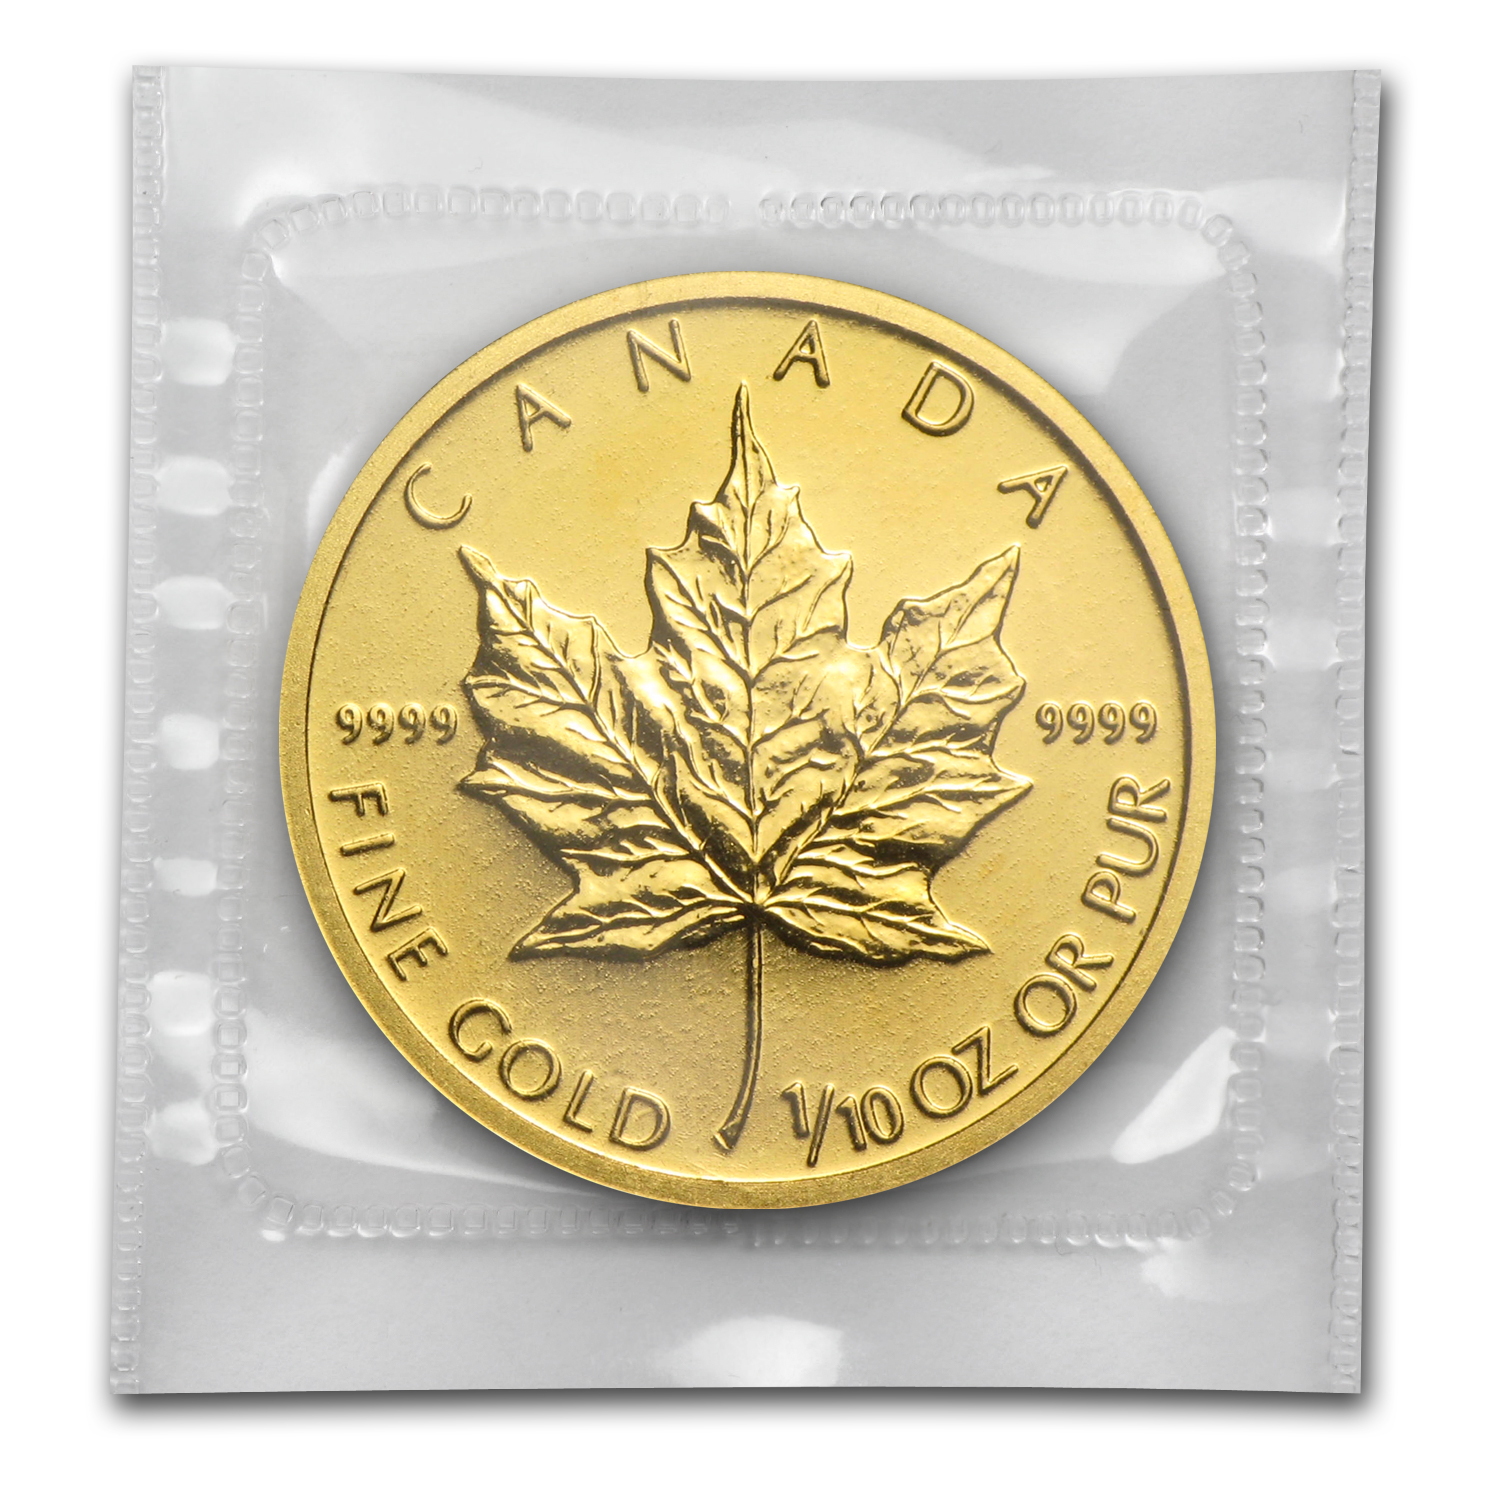 2010 1/10 oz Gold Canadian Maple Leaf